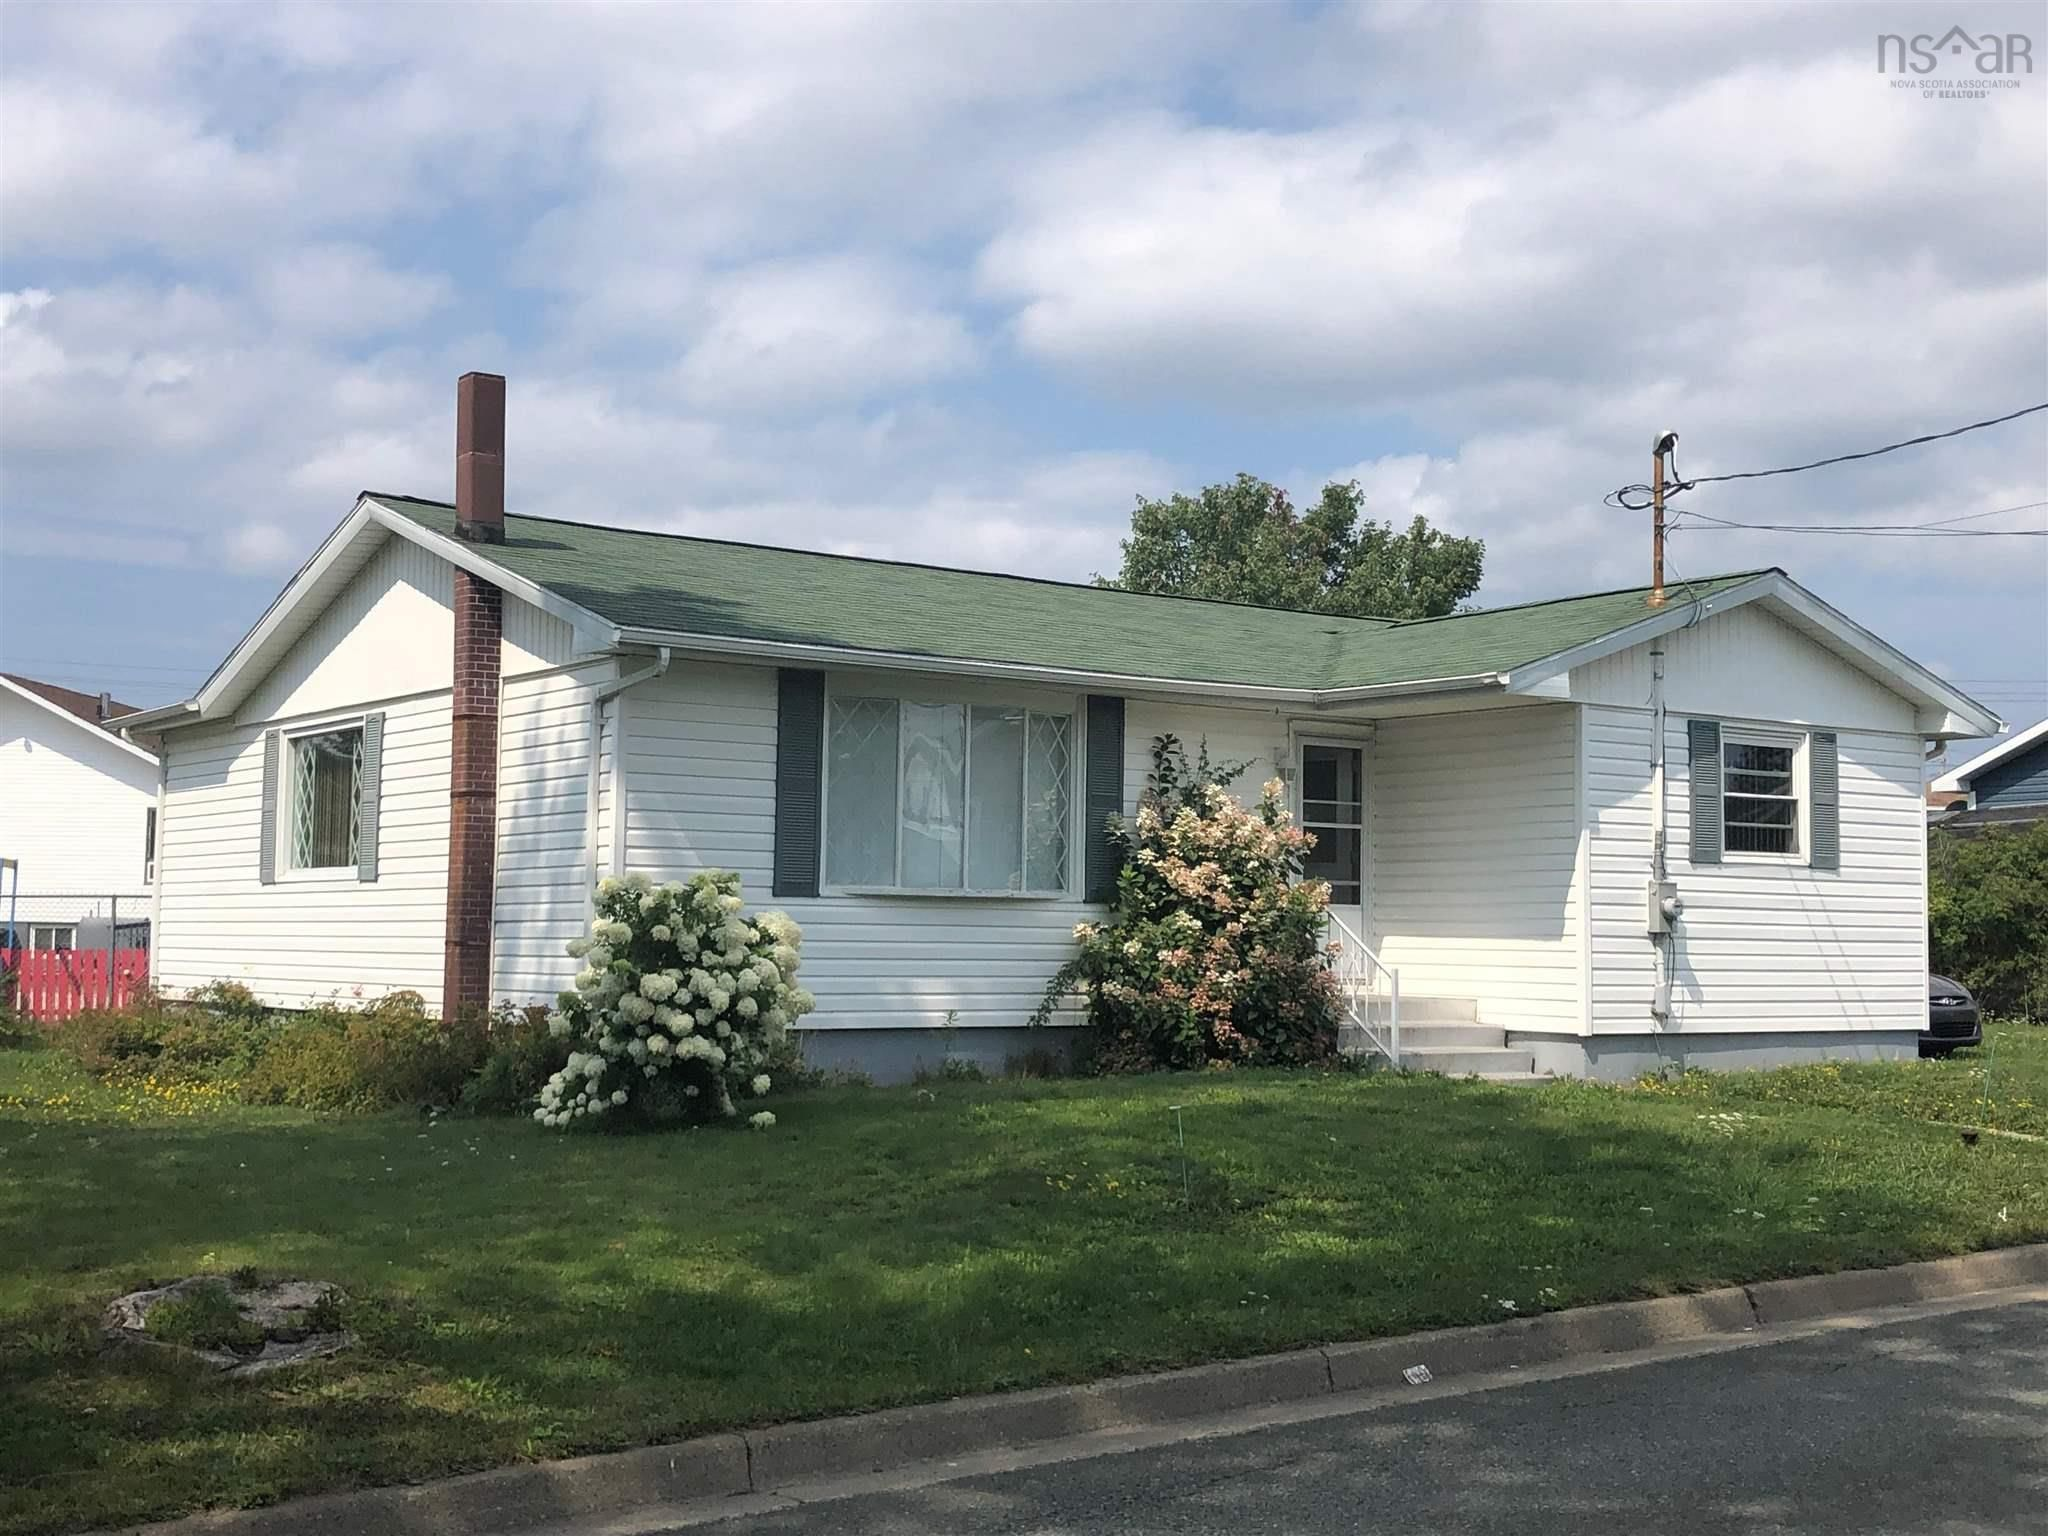 Main Photo: 8 Hickman Street in Glace Bay: 203-Glace Bay Residential for sale (Cape Breton)  : MLS®# 202122345